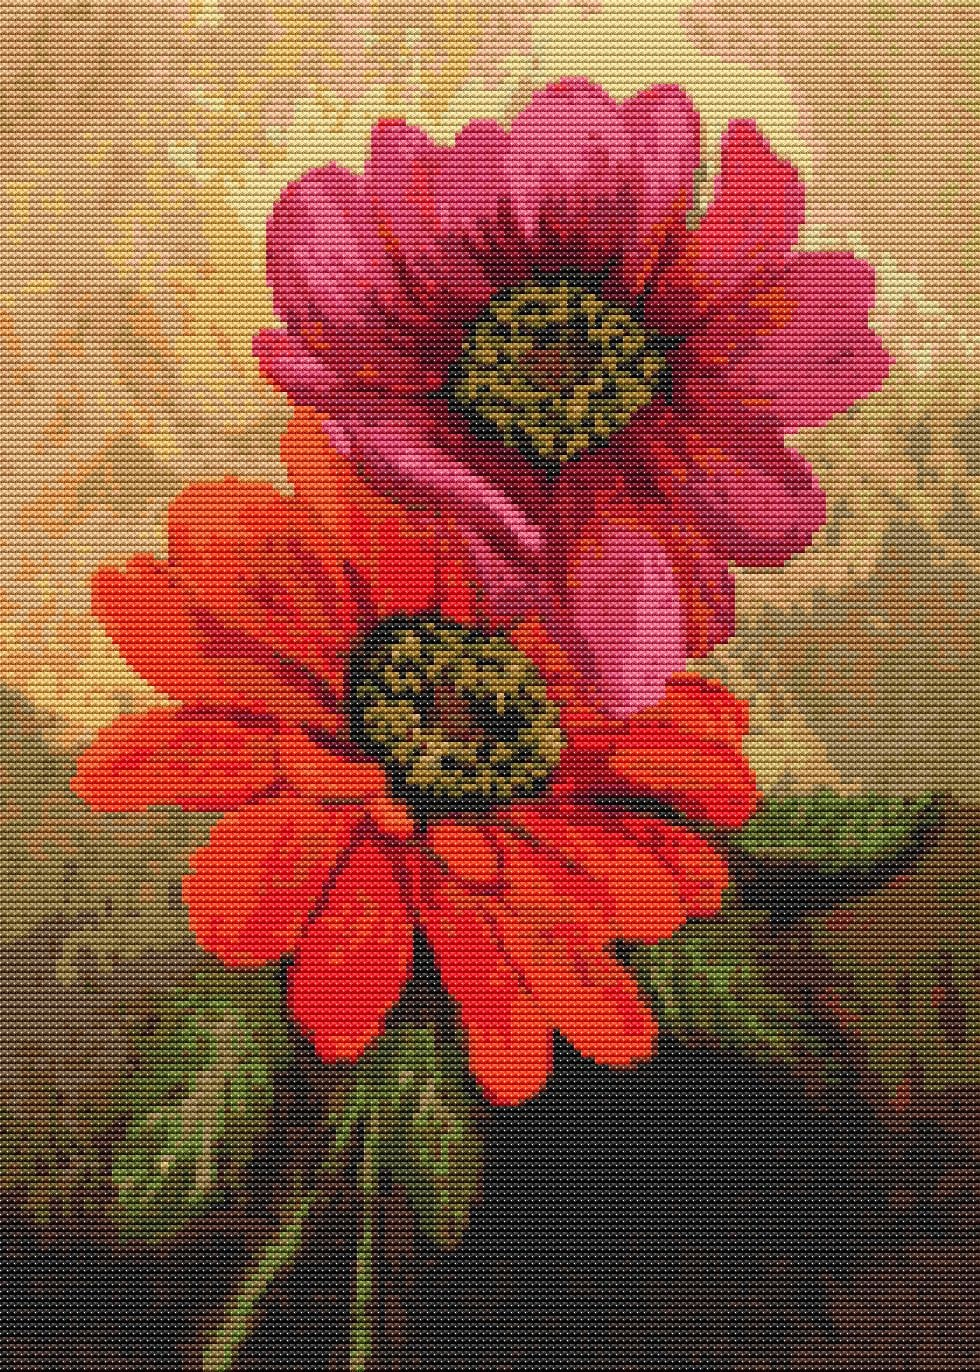 Flowers cross stitch kit affection